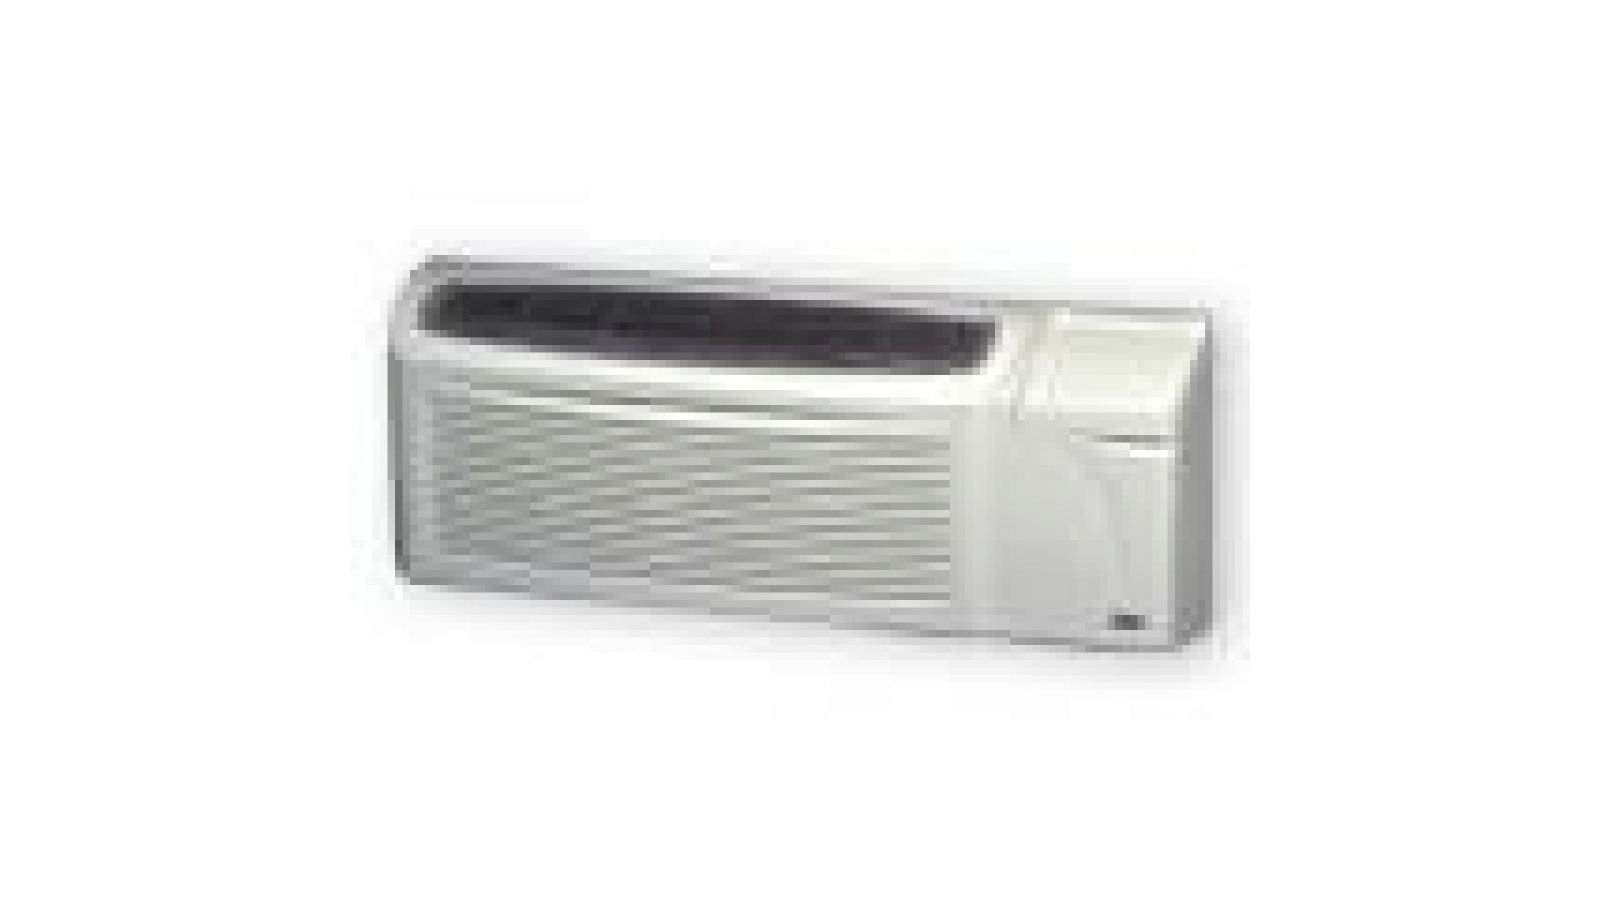 52P Performance Packaged Terminal Air Conditioner